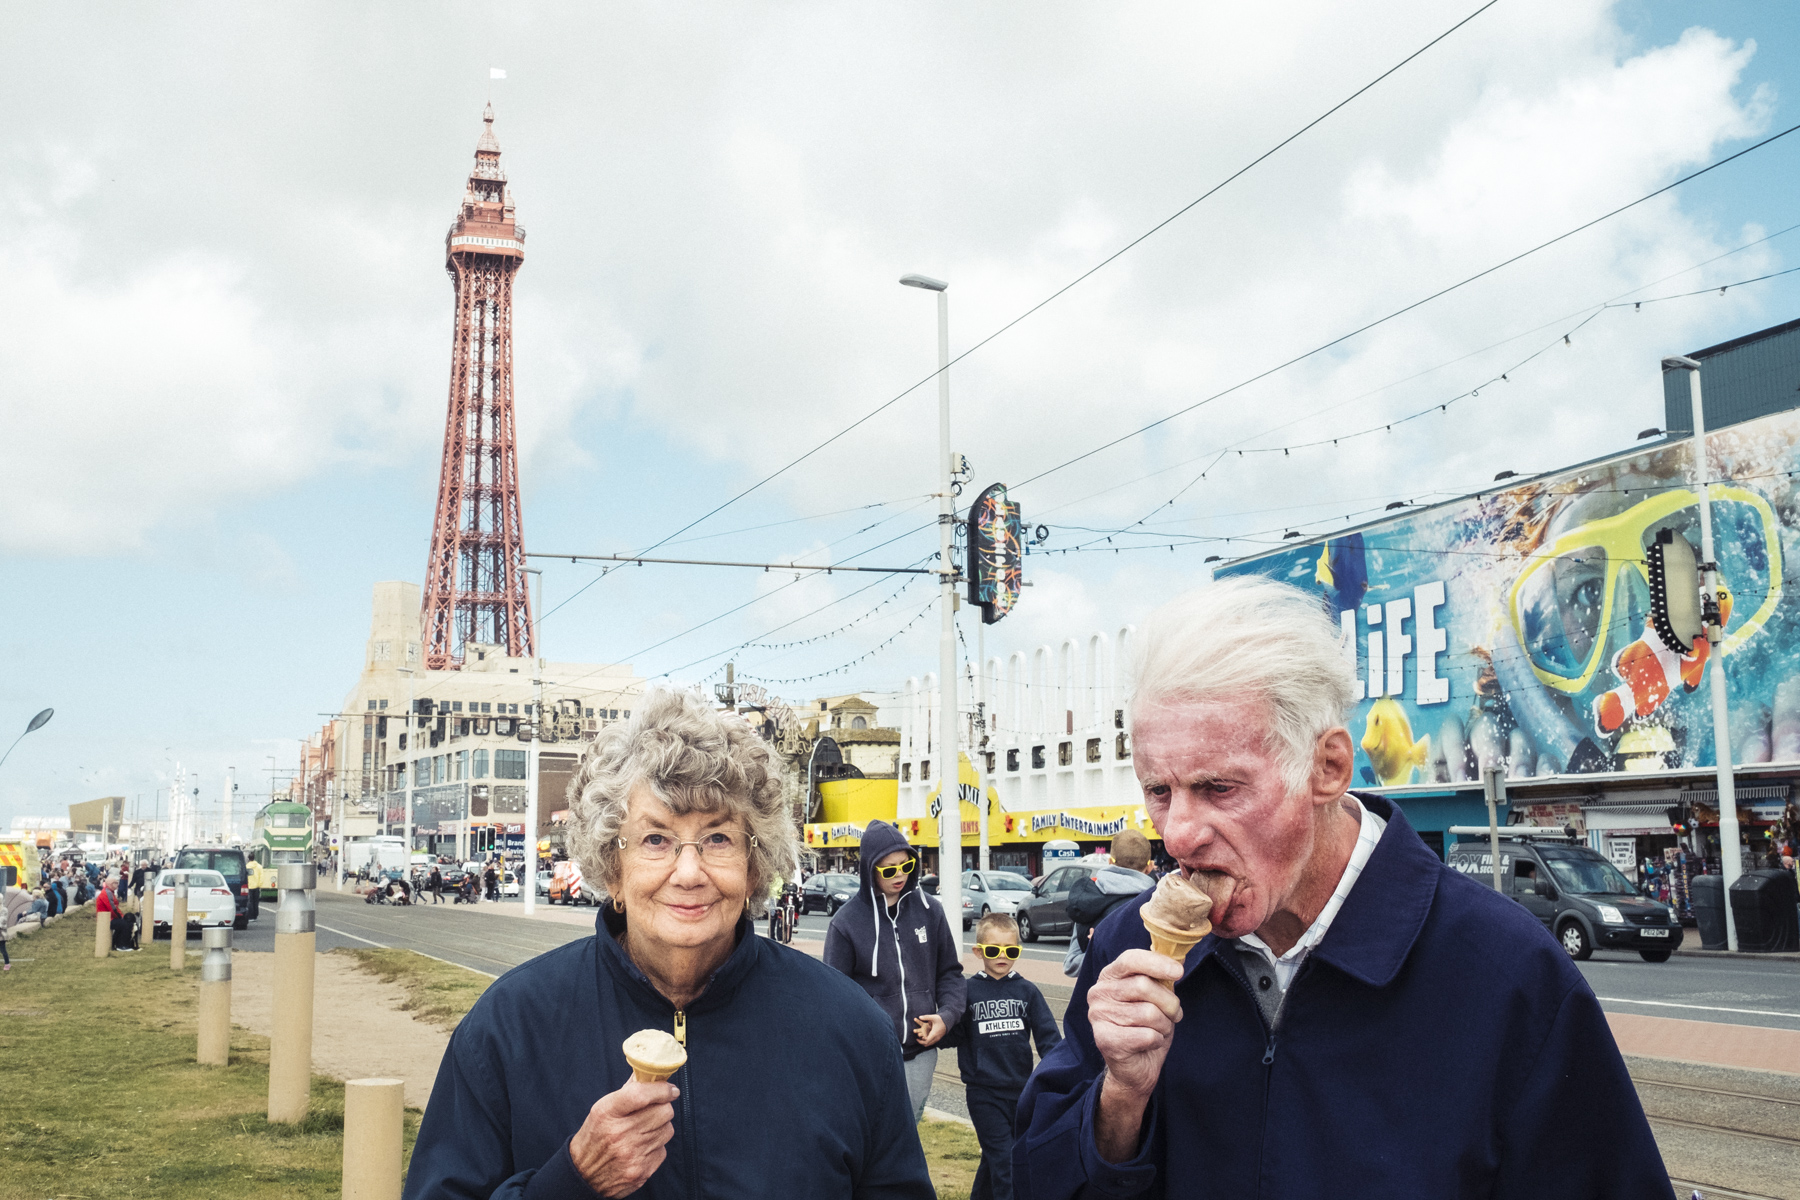 Back to Blackpool. Vacations of Brexit. Back to Blackpool. Les vacances du Brexit.